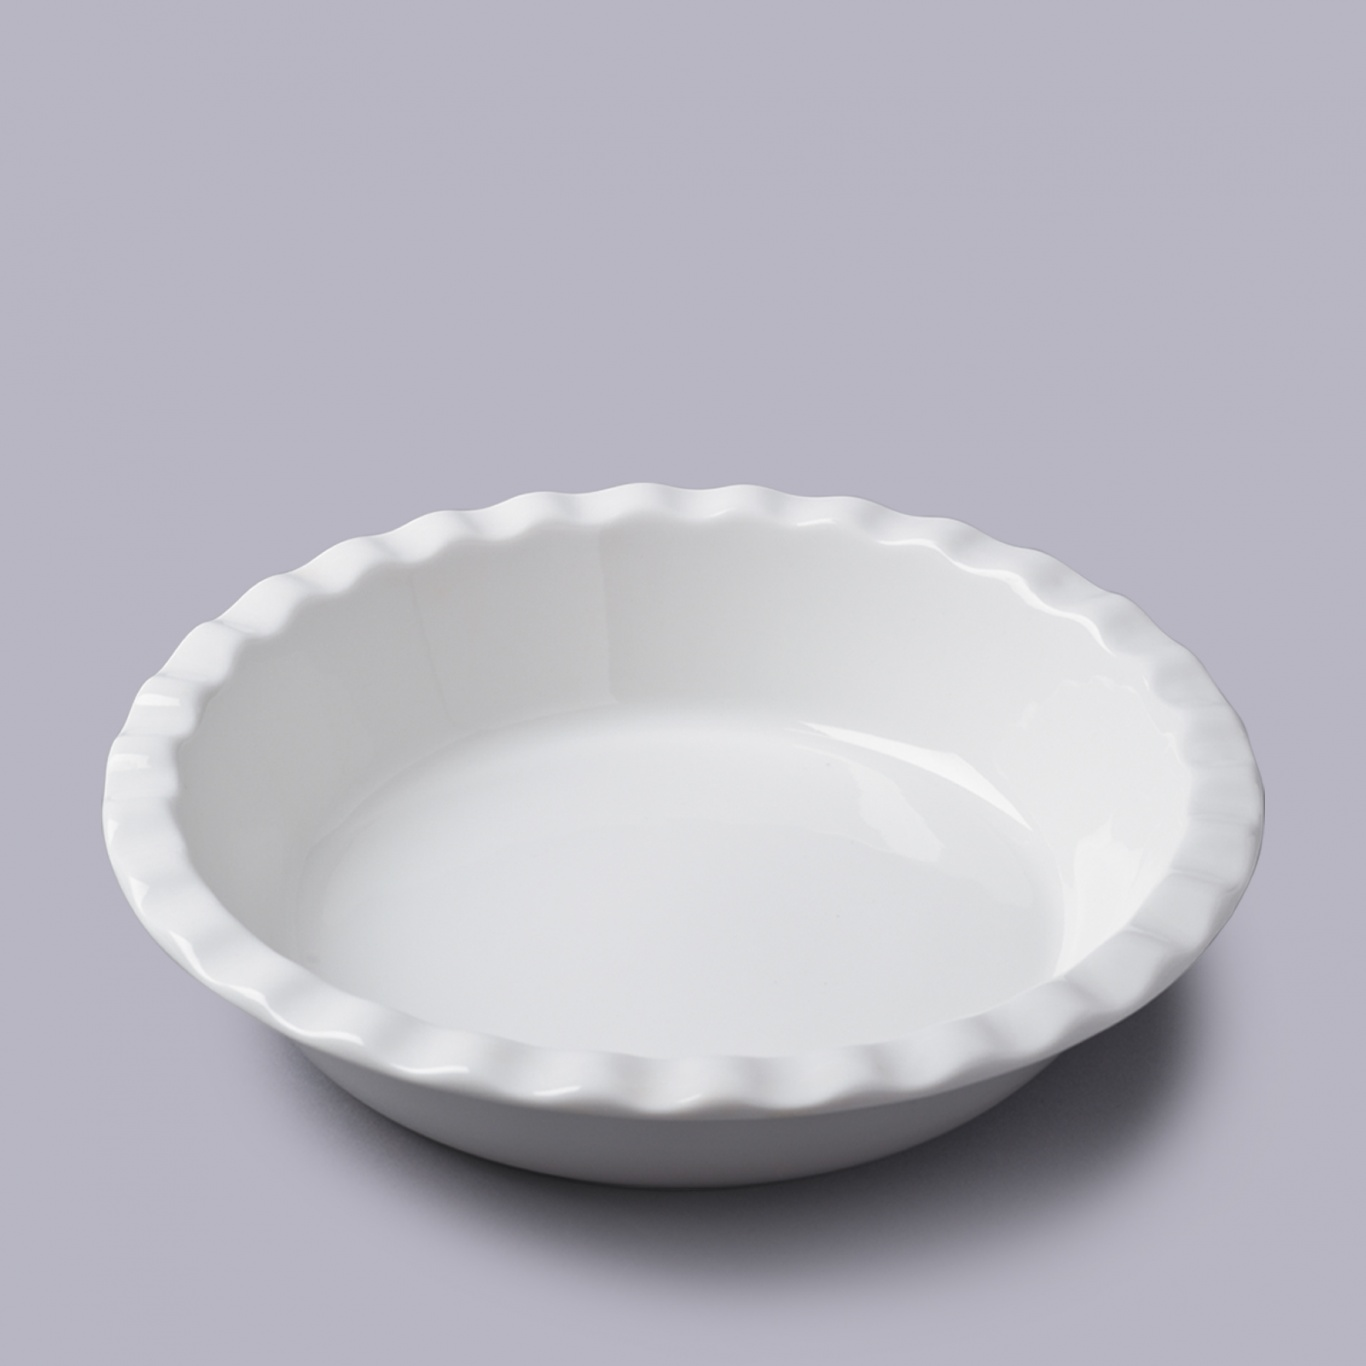 Image of Round Pie Dish with Crinkle Crust Rim 27cm